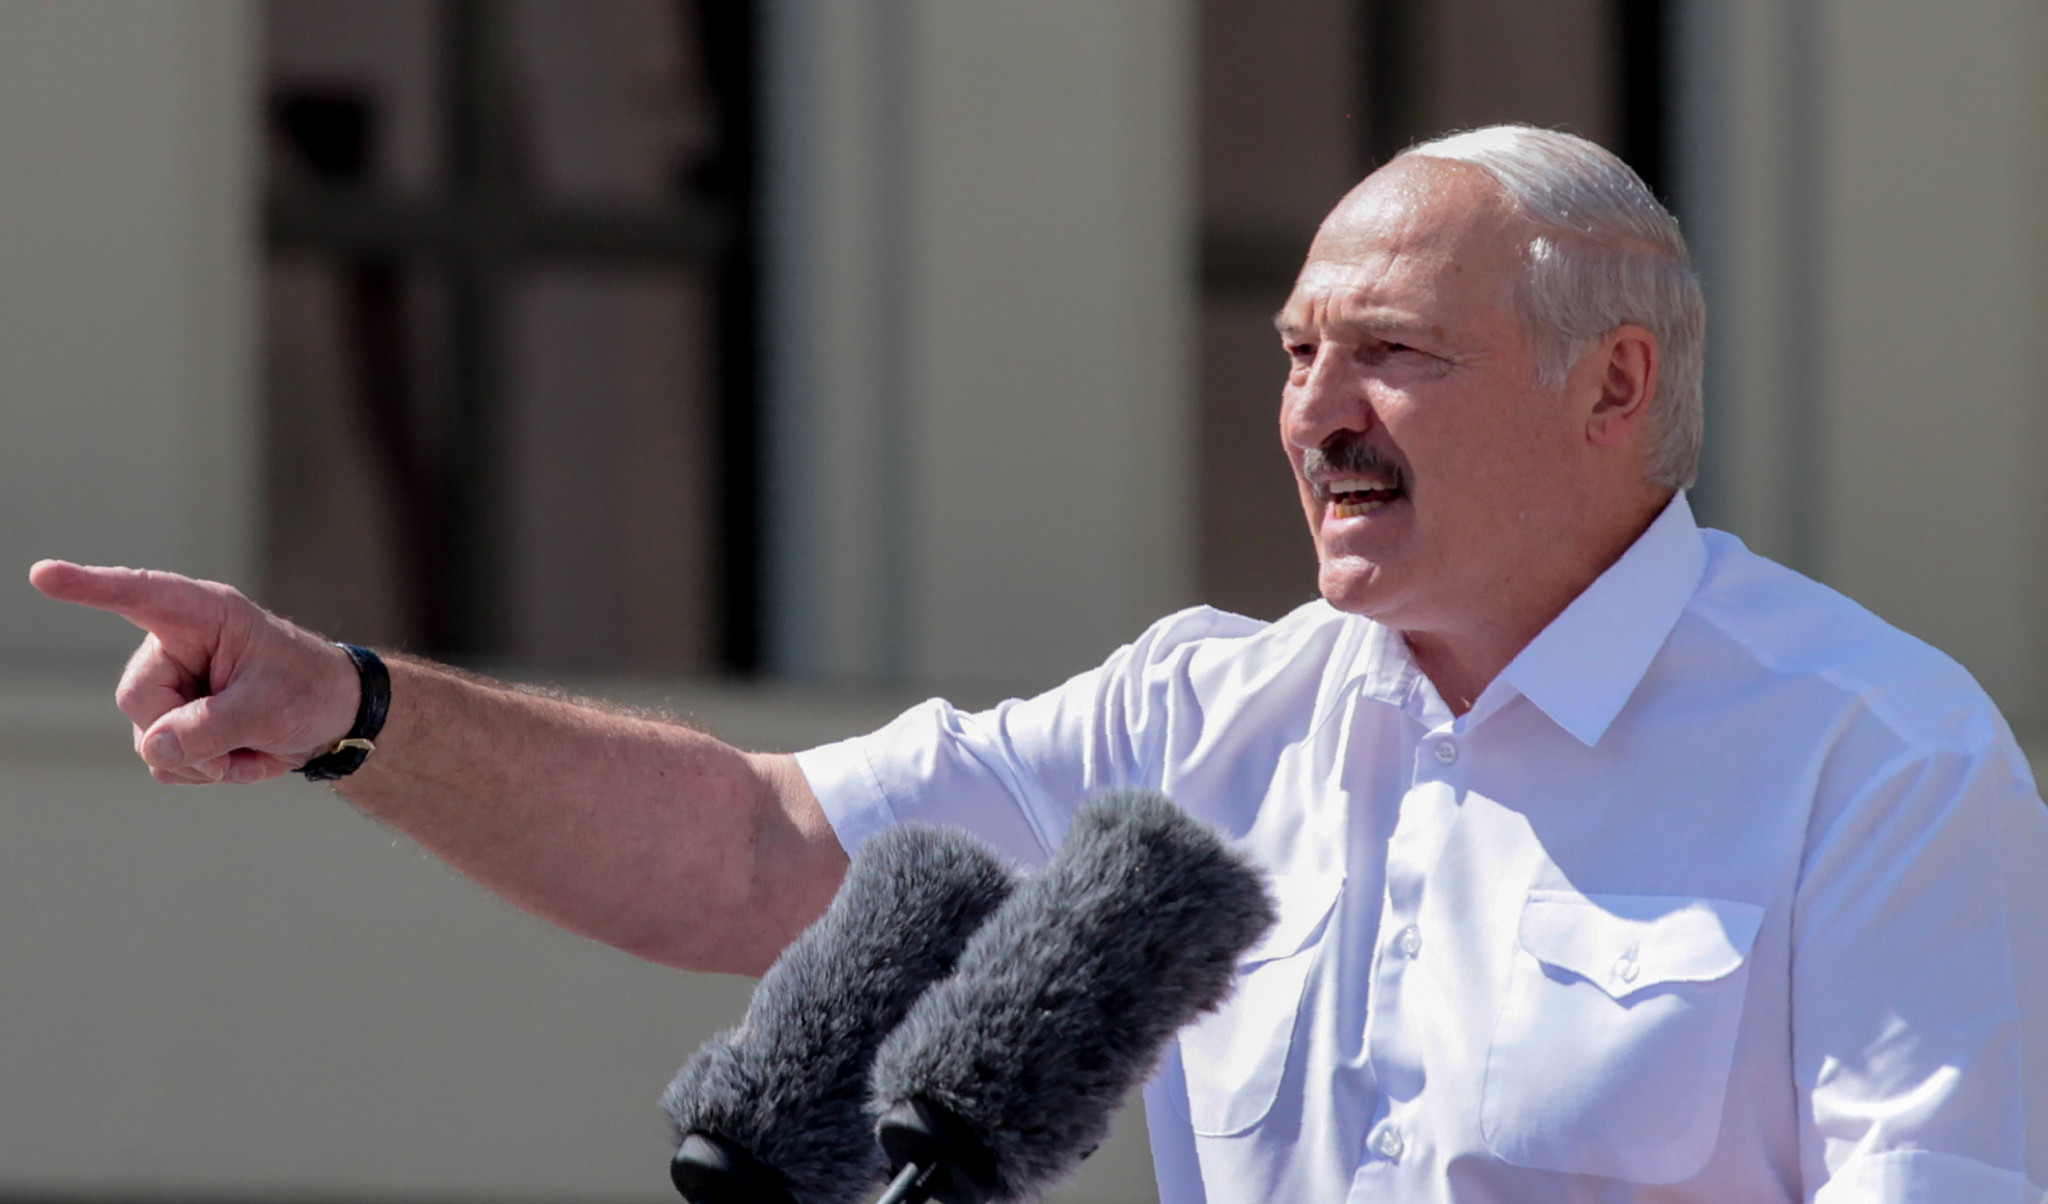 Britain and Canada impose travel bans on Belarusian President Lukashenko